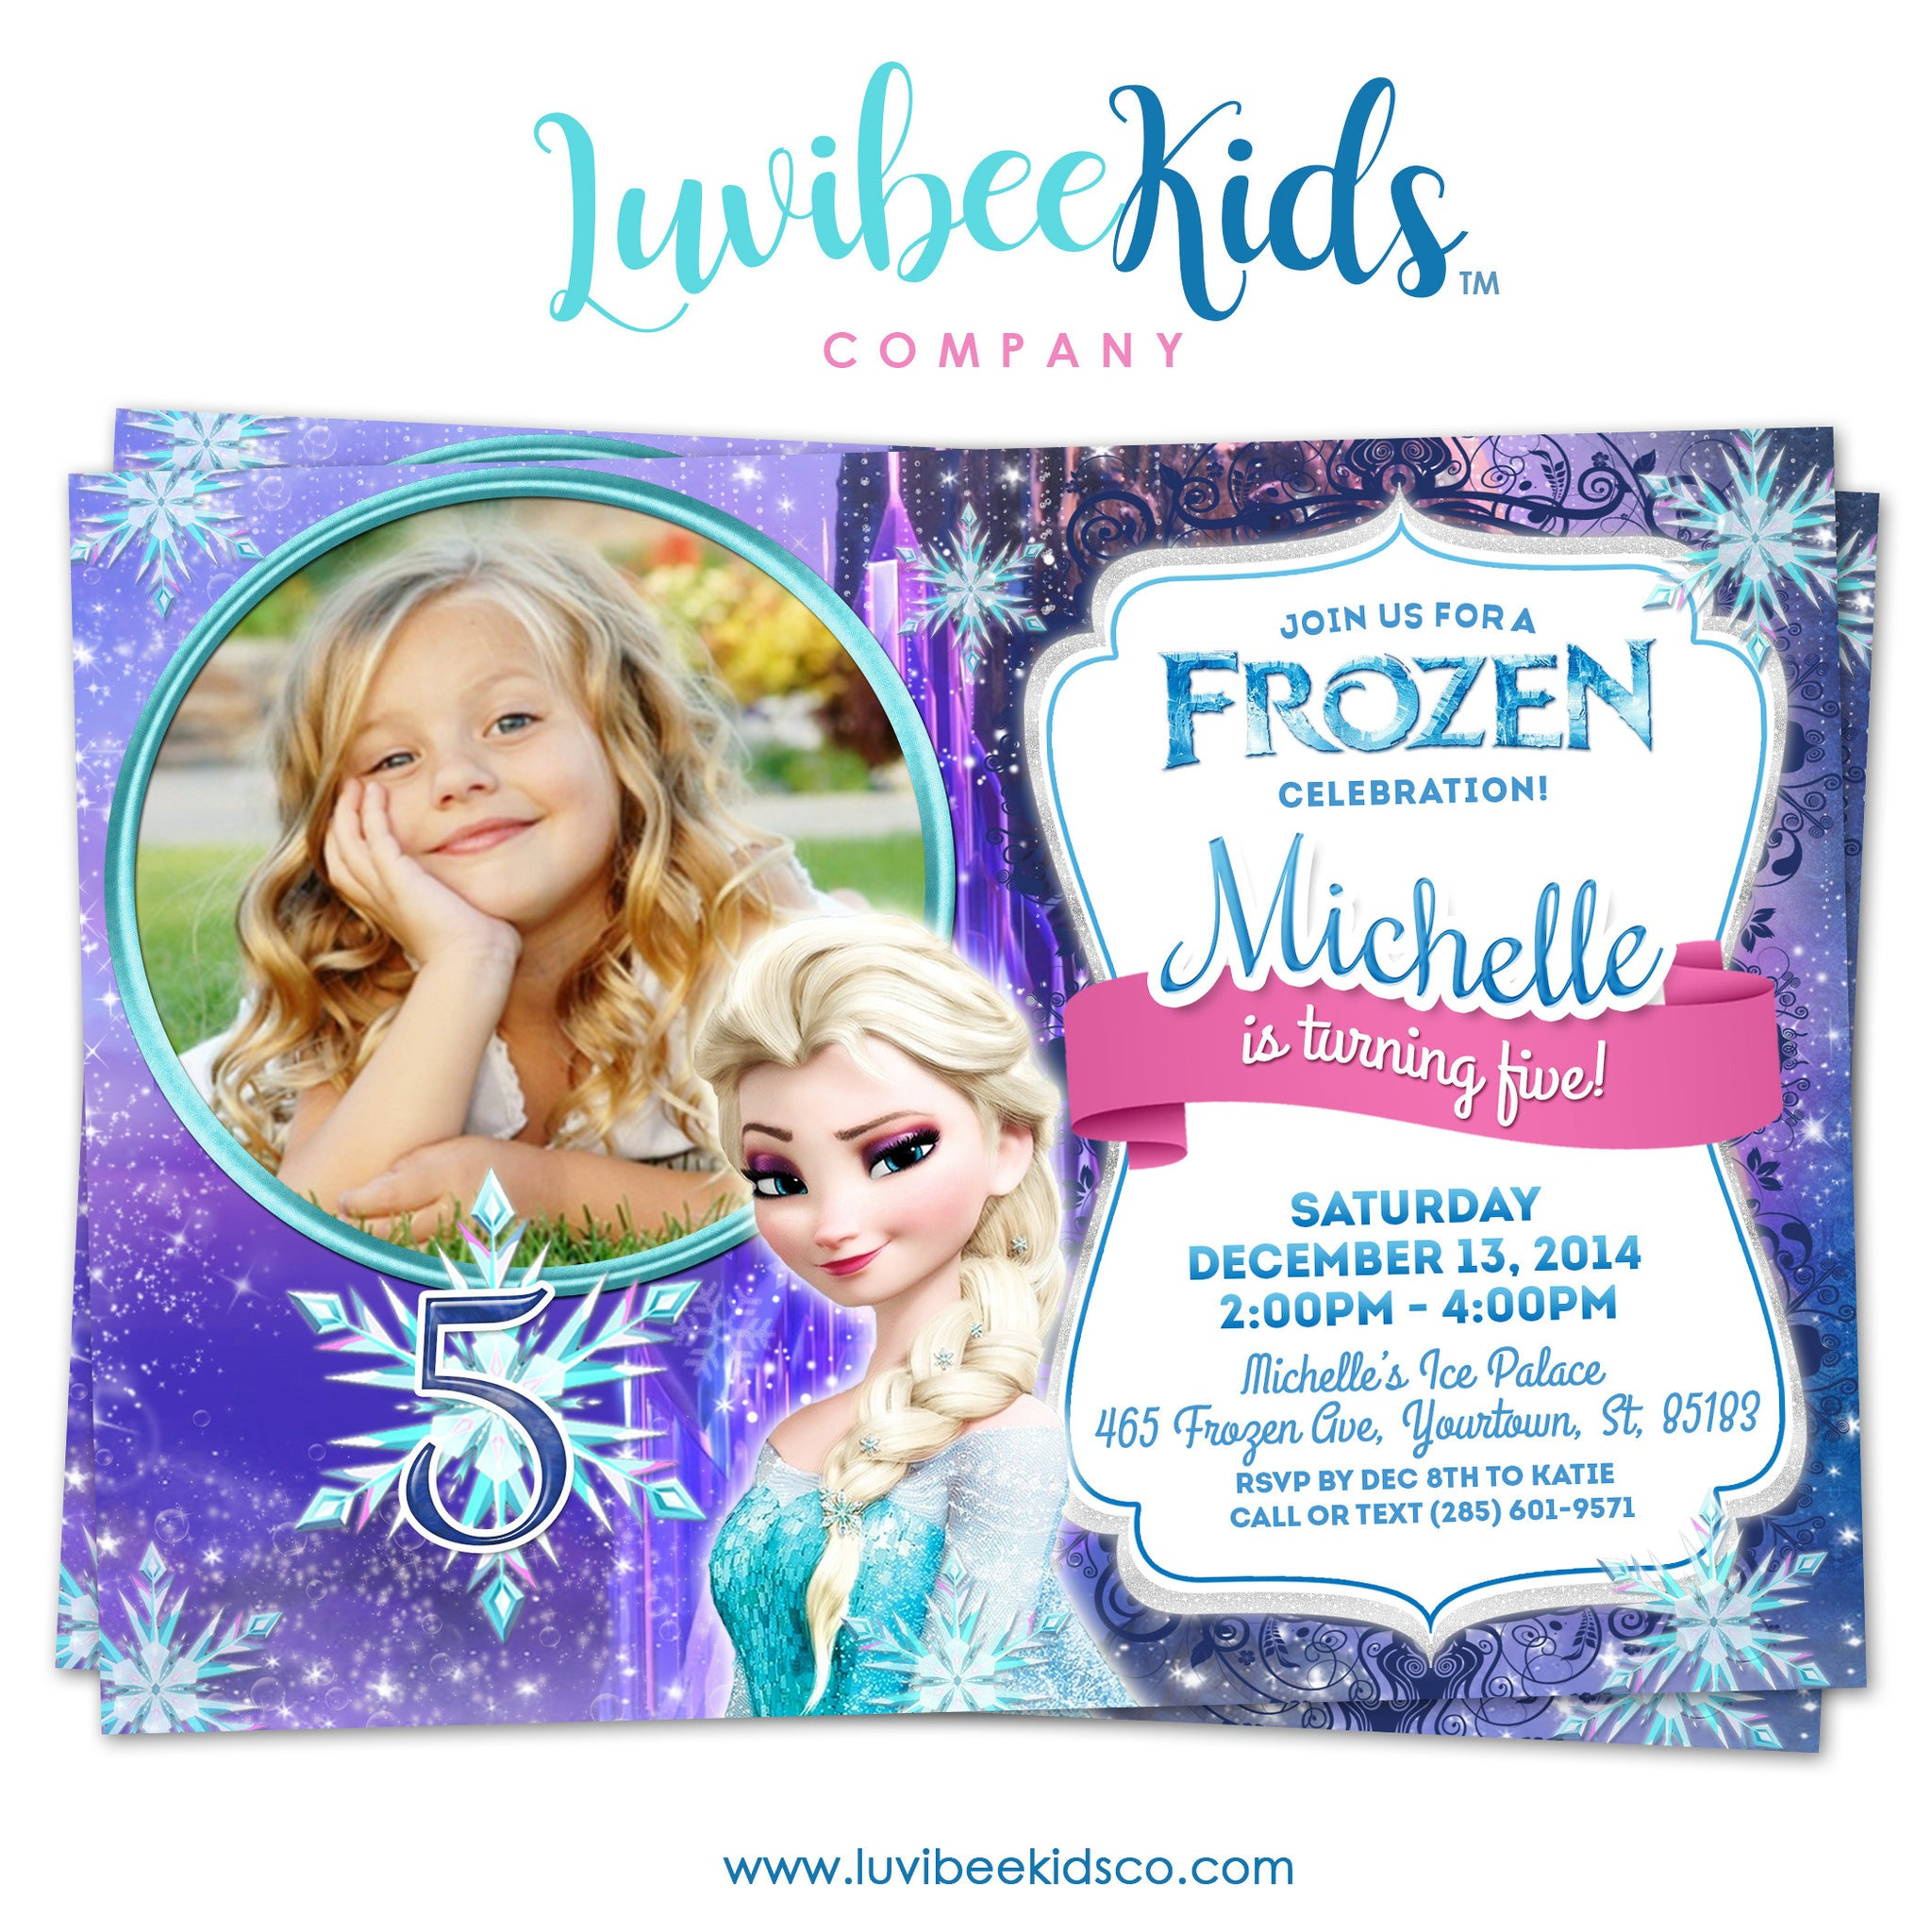 Frozen Birthday Invitation | Frozen Elsa with Photo - LuvibeeKidsCo